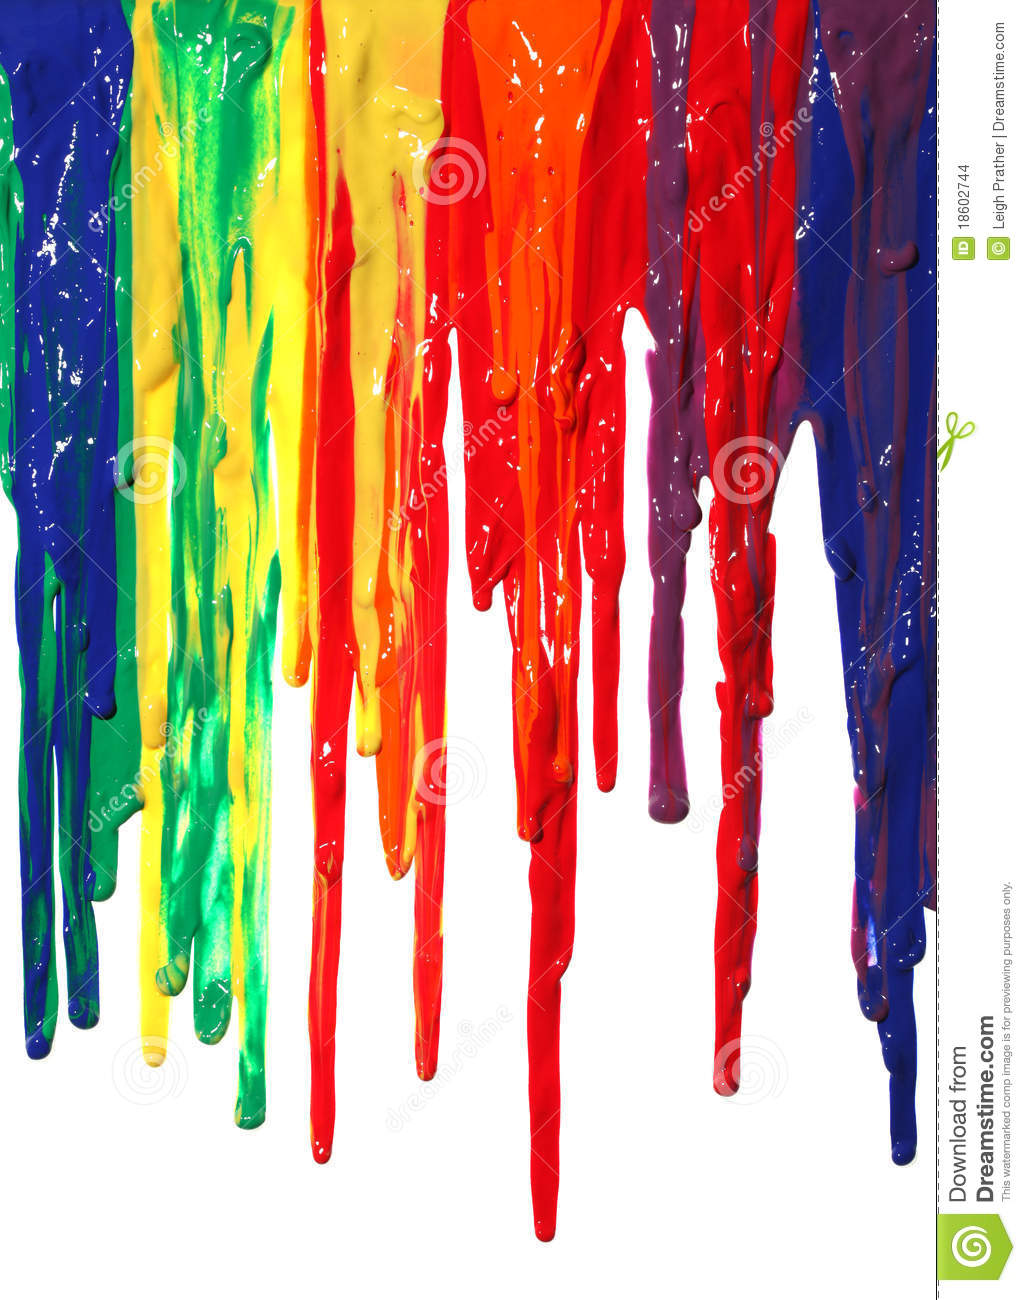 Paint Dripping Stock Images - Image: 18602744